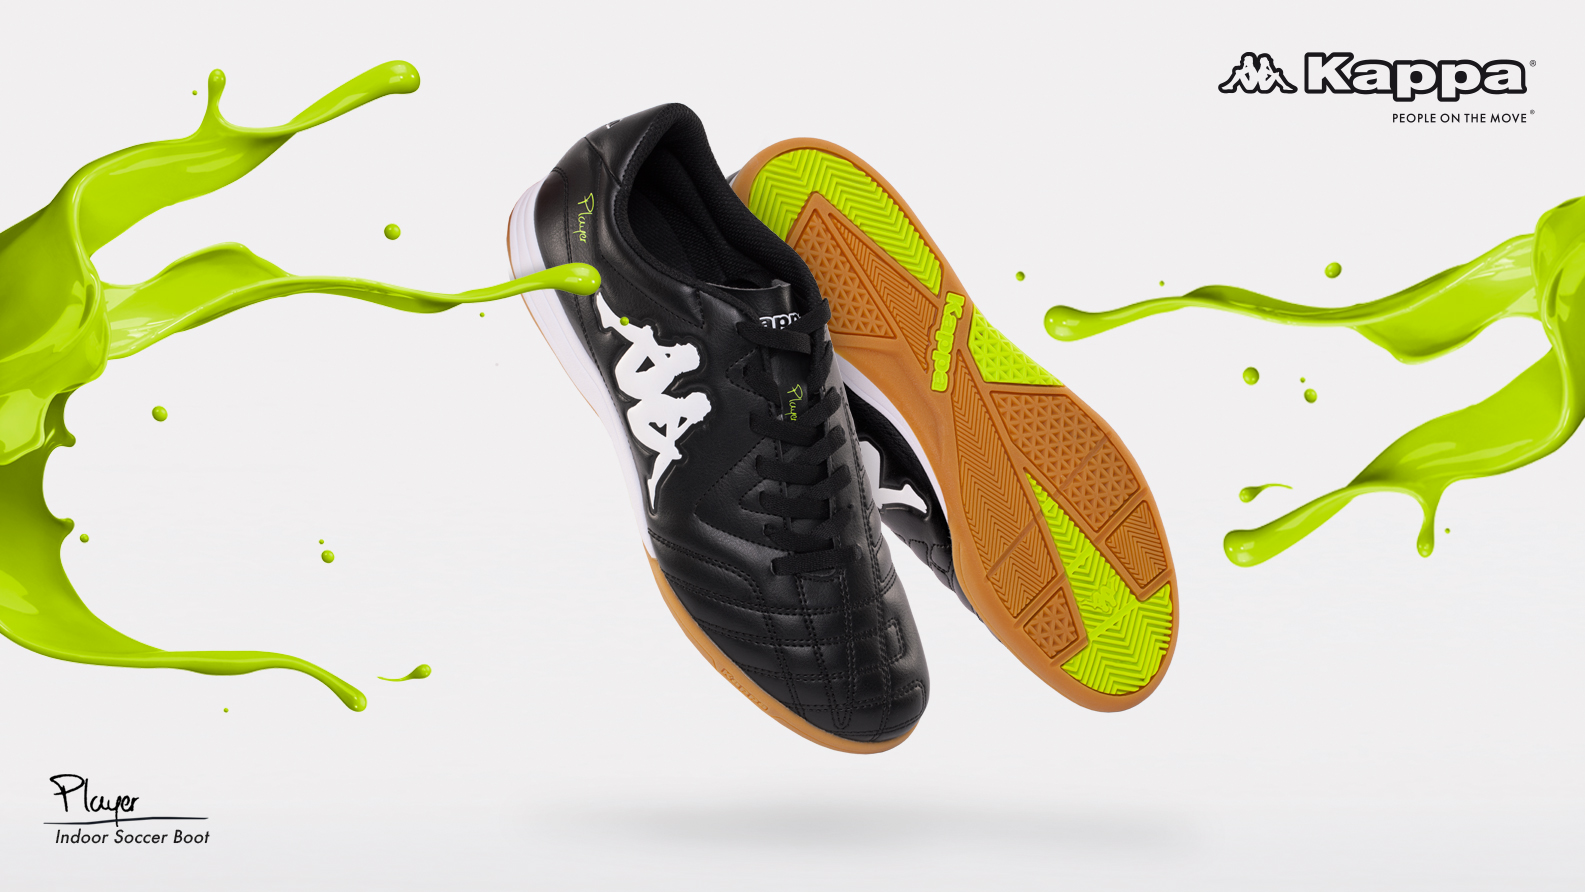 Kappa Australia, Player Indoor Soccer Boot Campaign